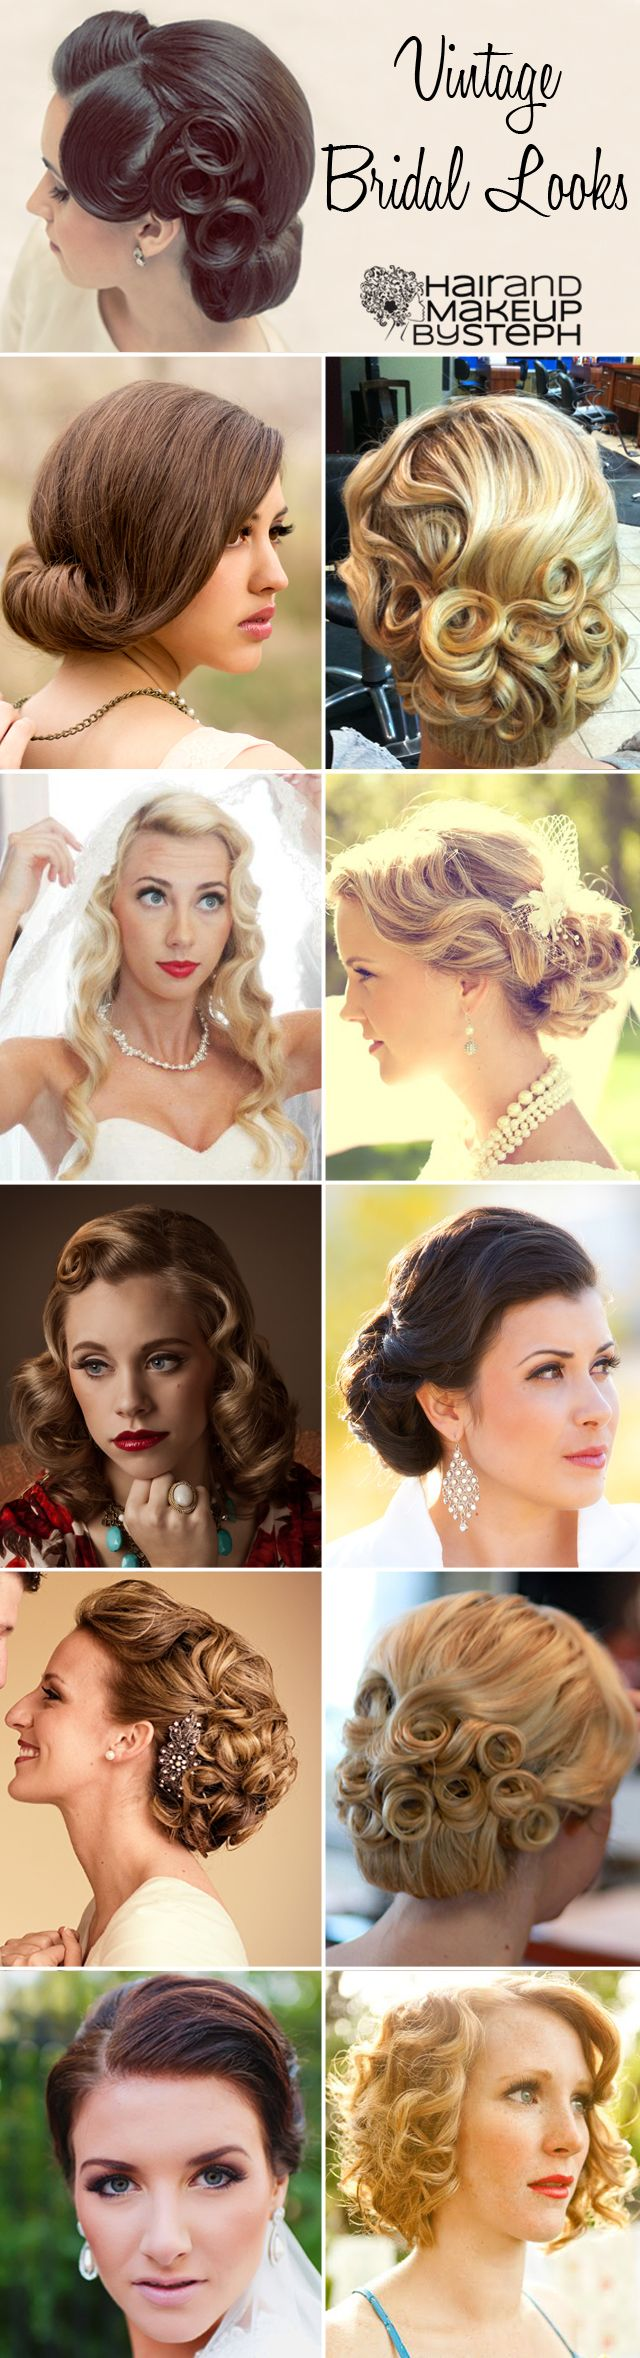 Vintage bridal looks via blog.hairandmakeupbysteph.com; wedding hair, hairstyles, updos, bride, wedding